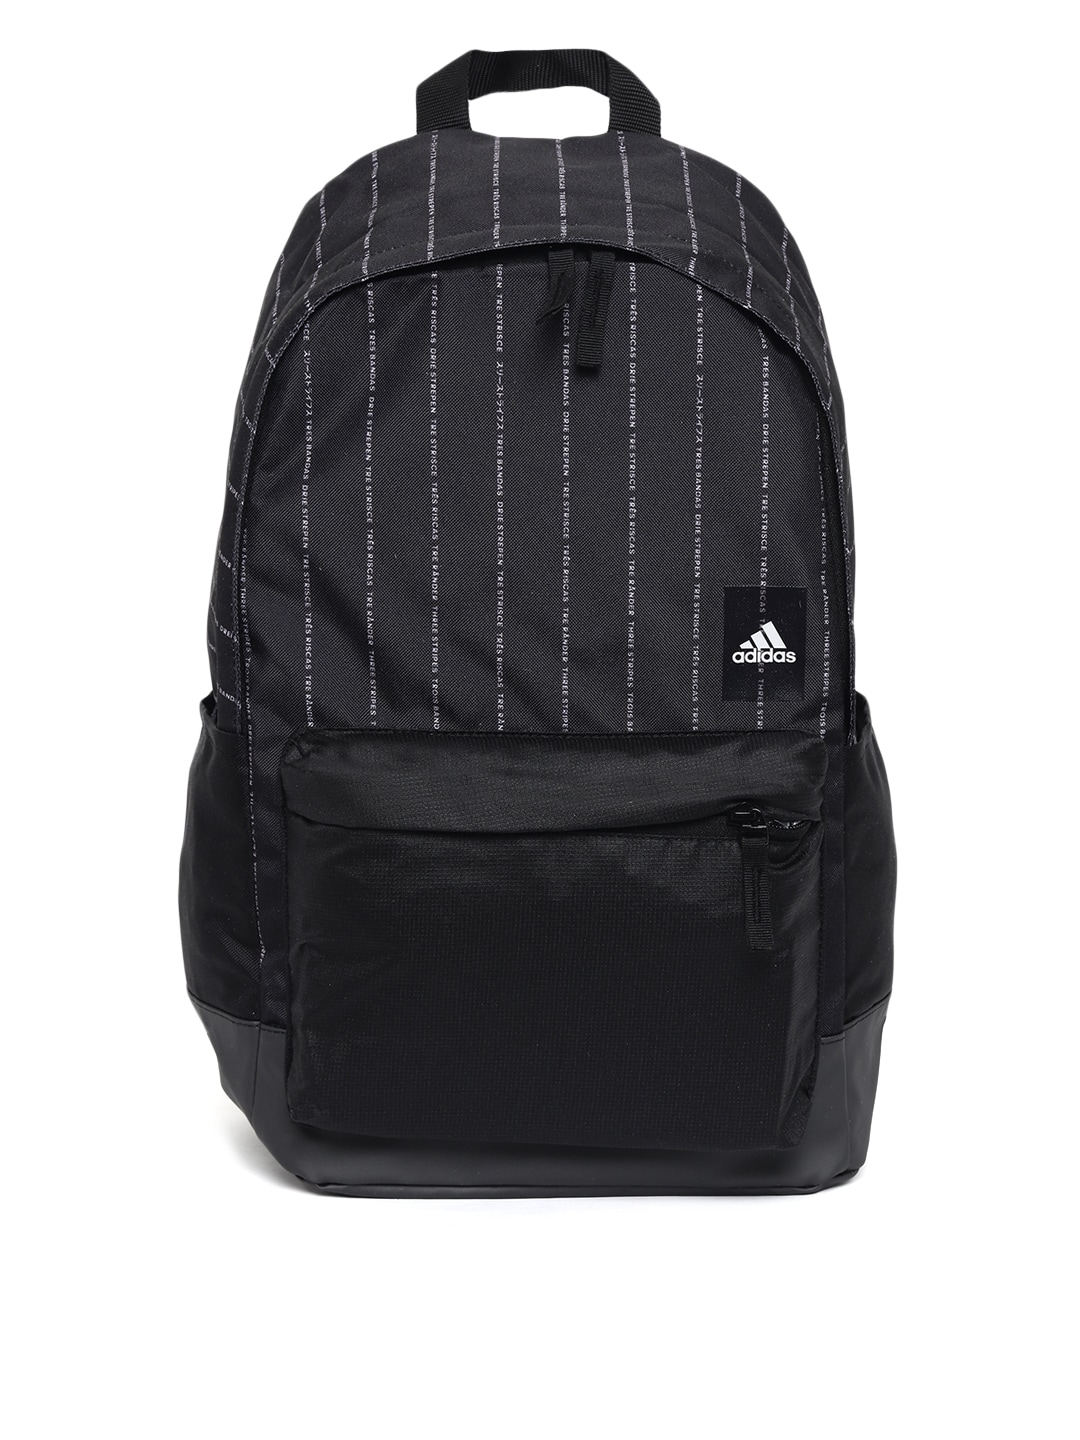 32c071a641af Backpacks - Buy Backpack Online for Men